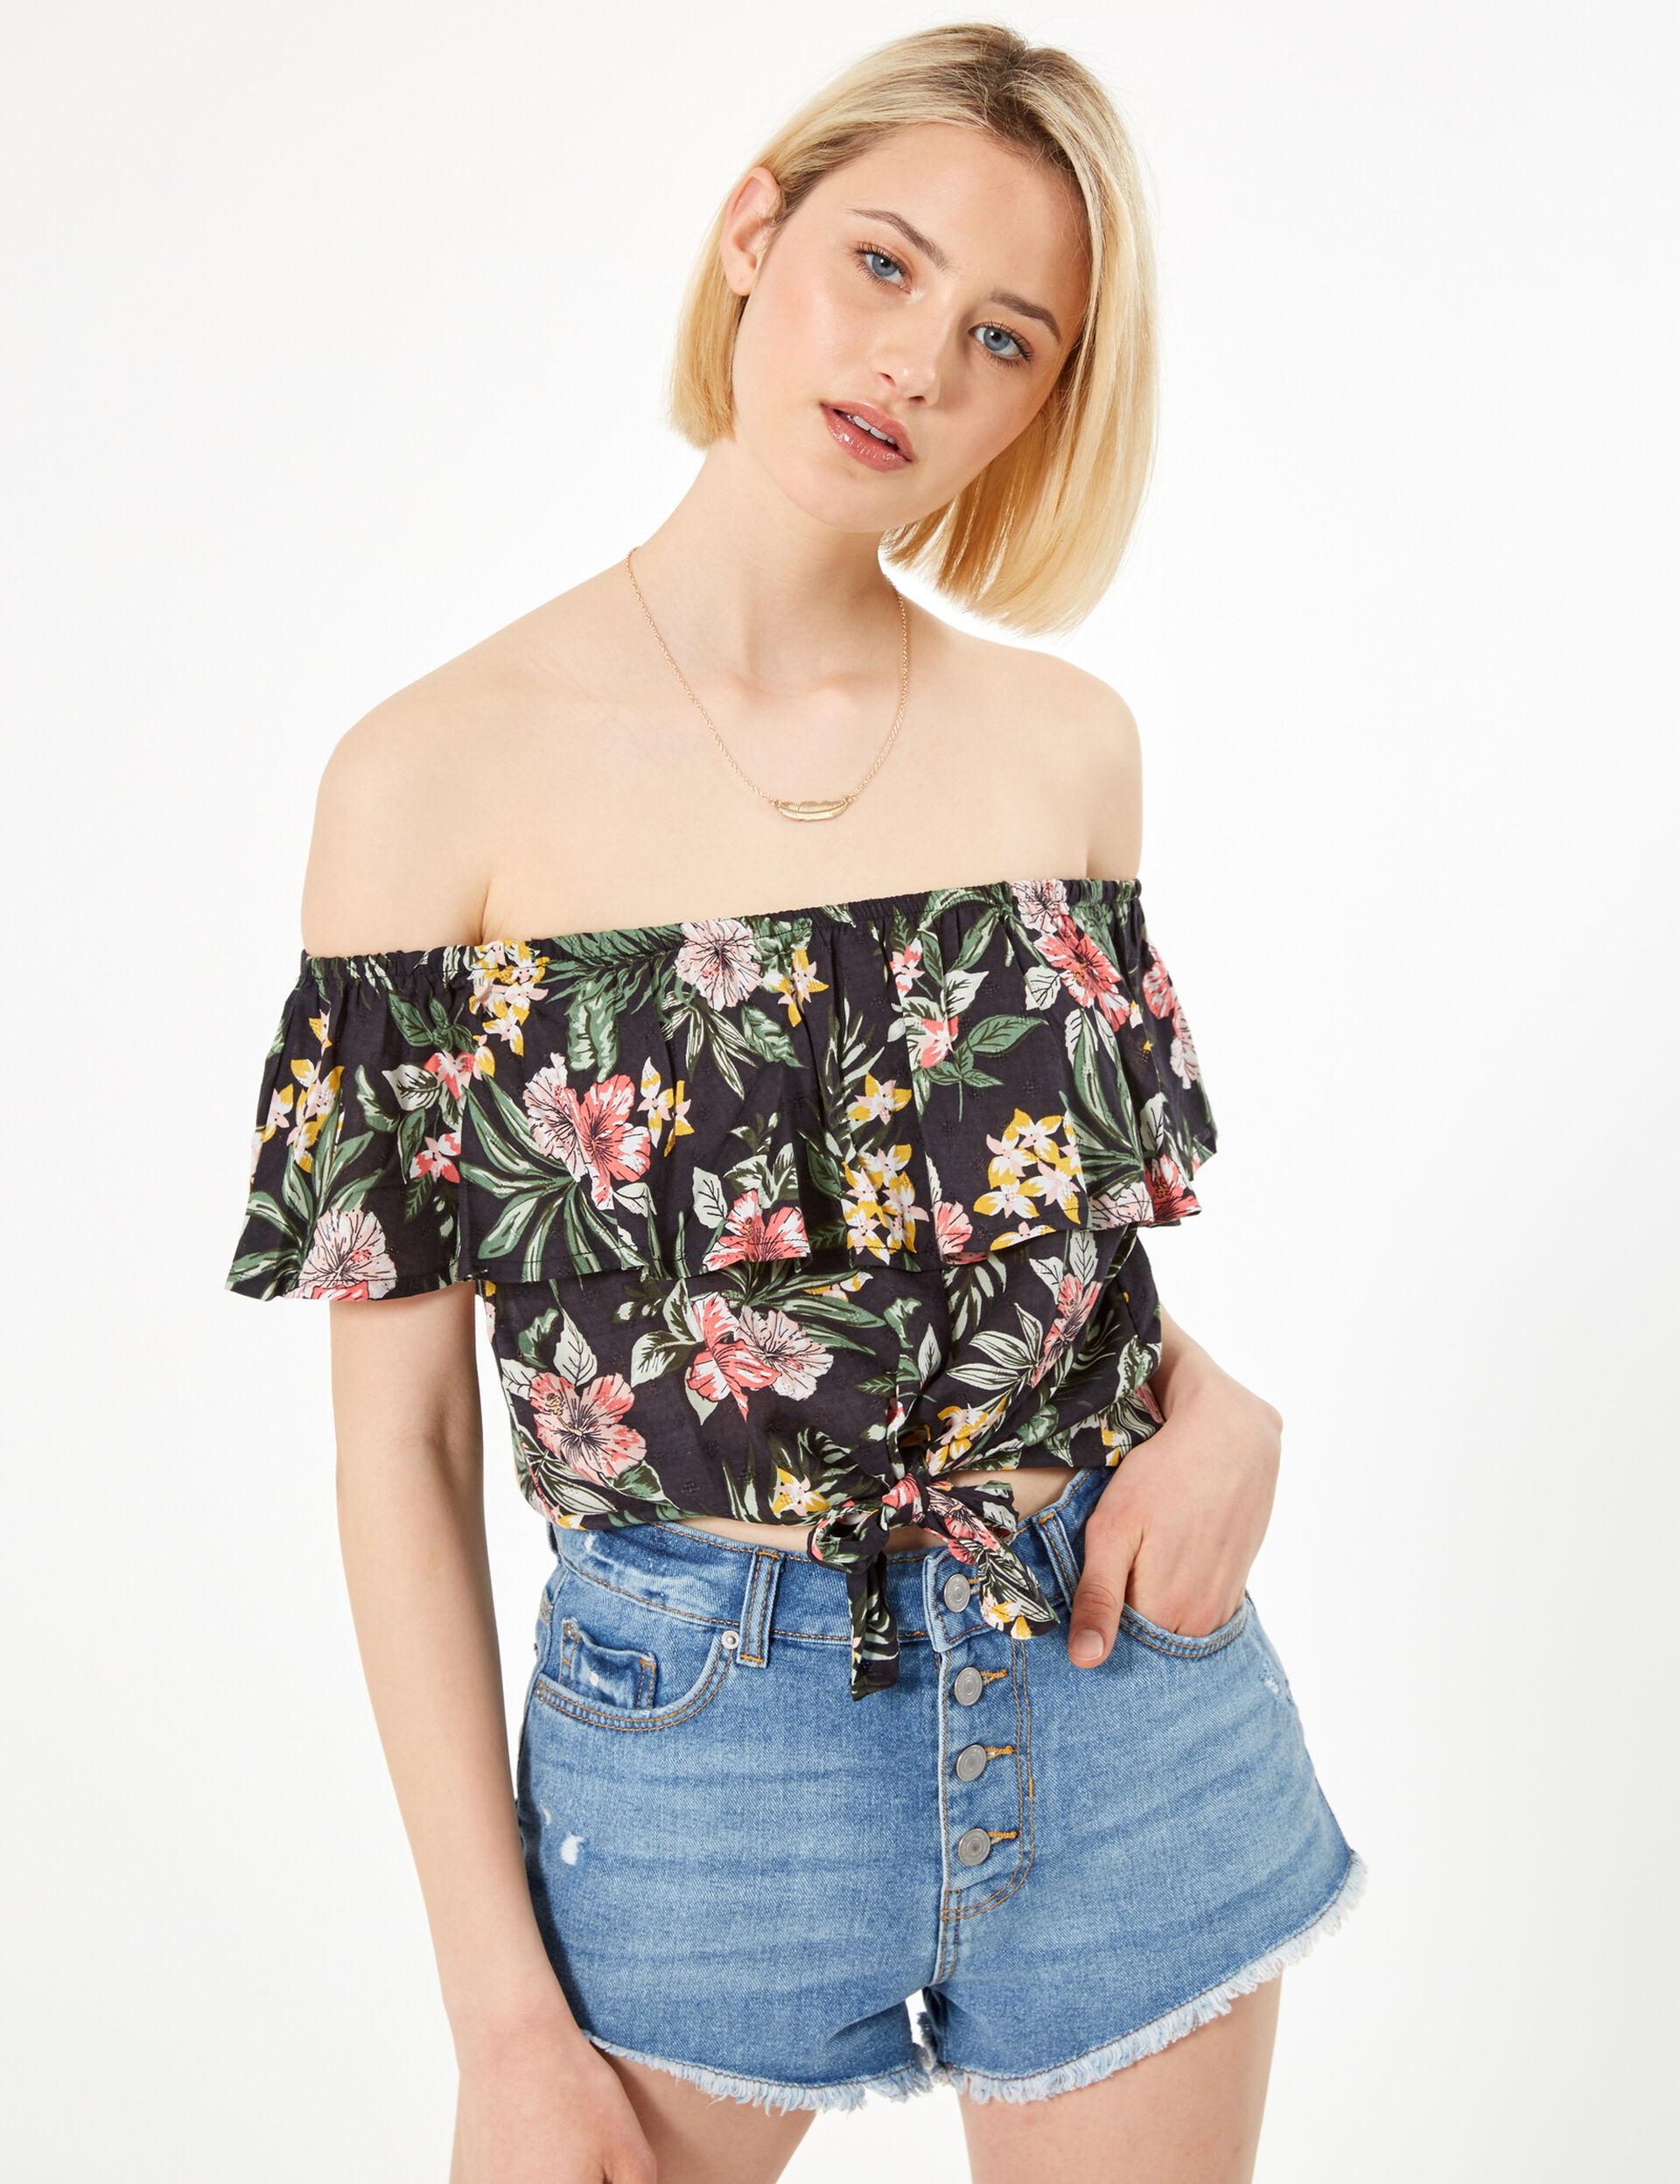 Black floral blouse with frill detail